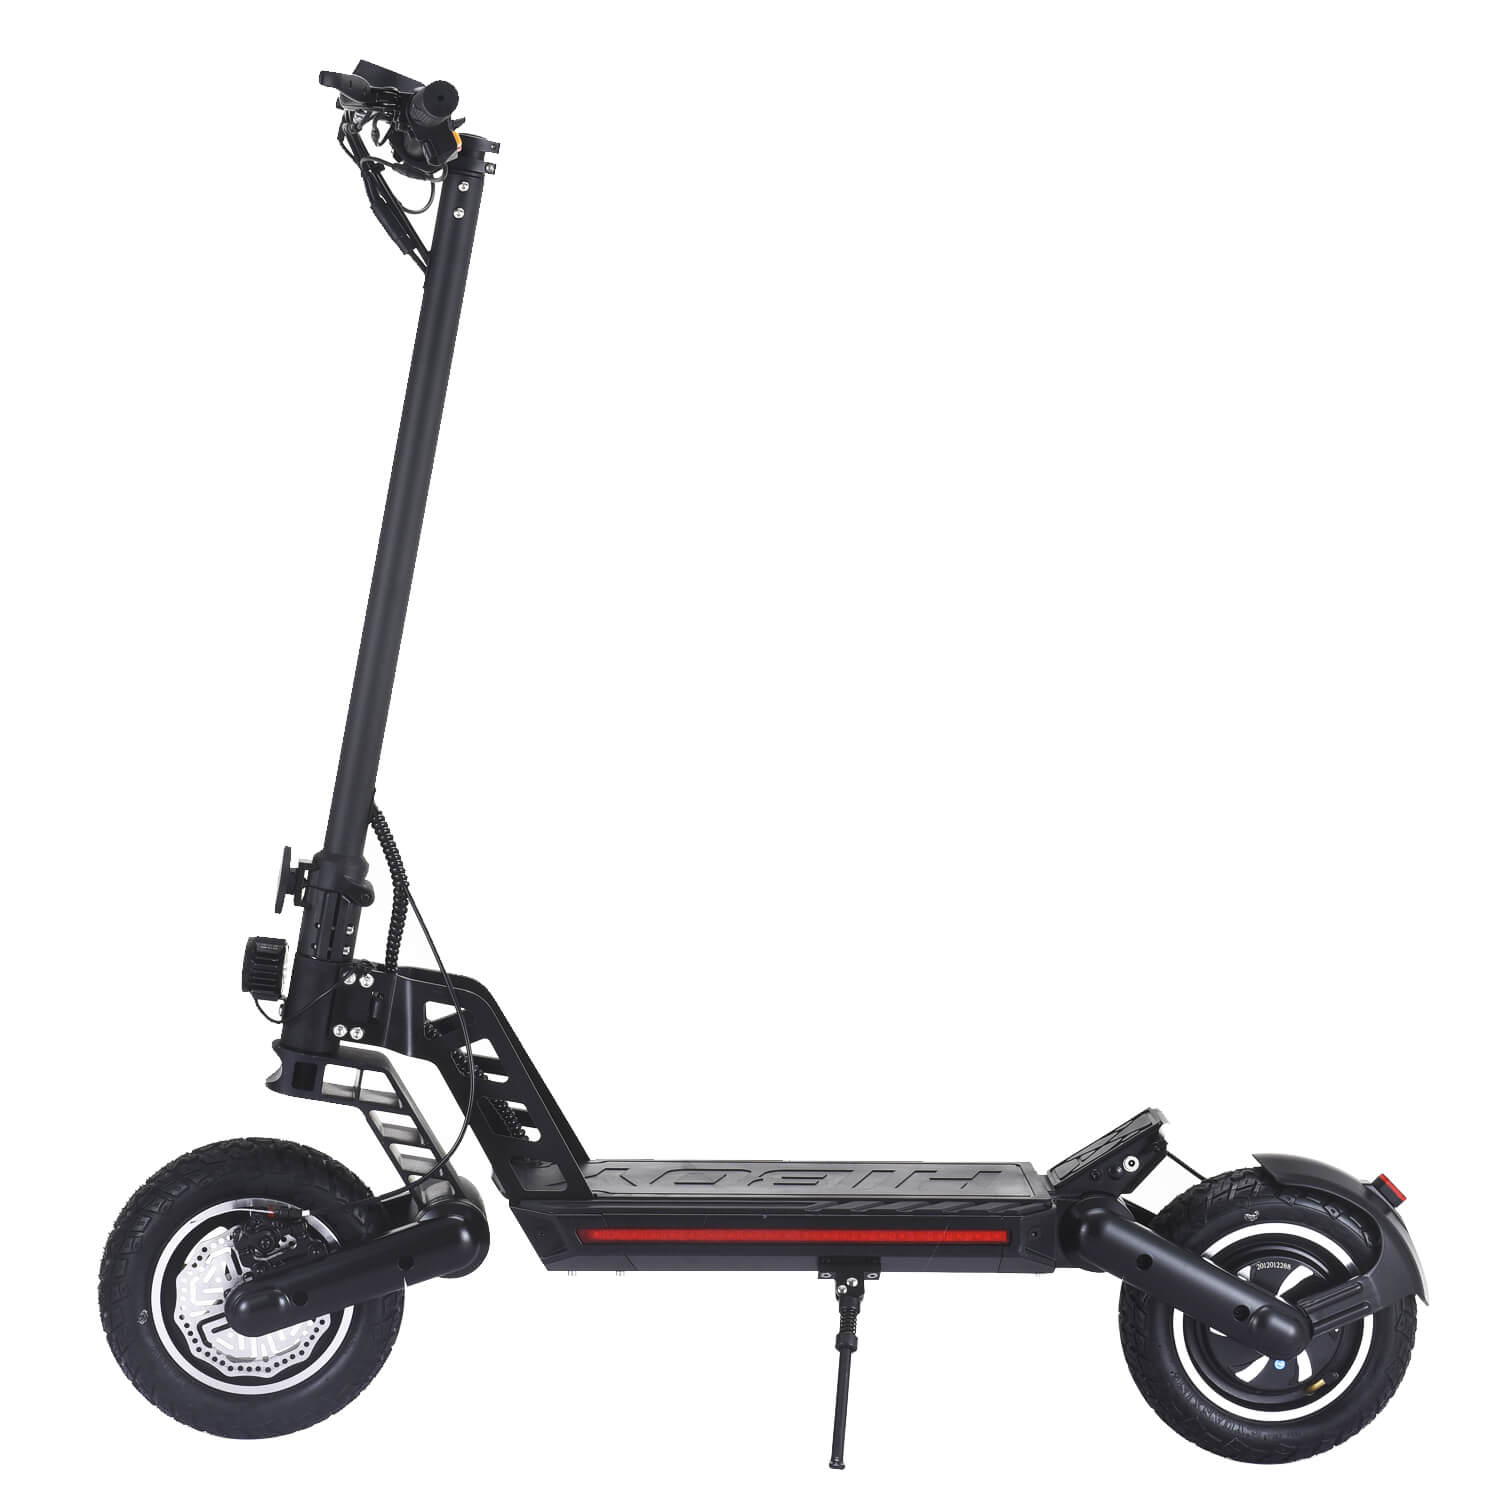 Hiboy TITAN Electric Scooter